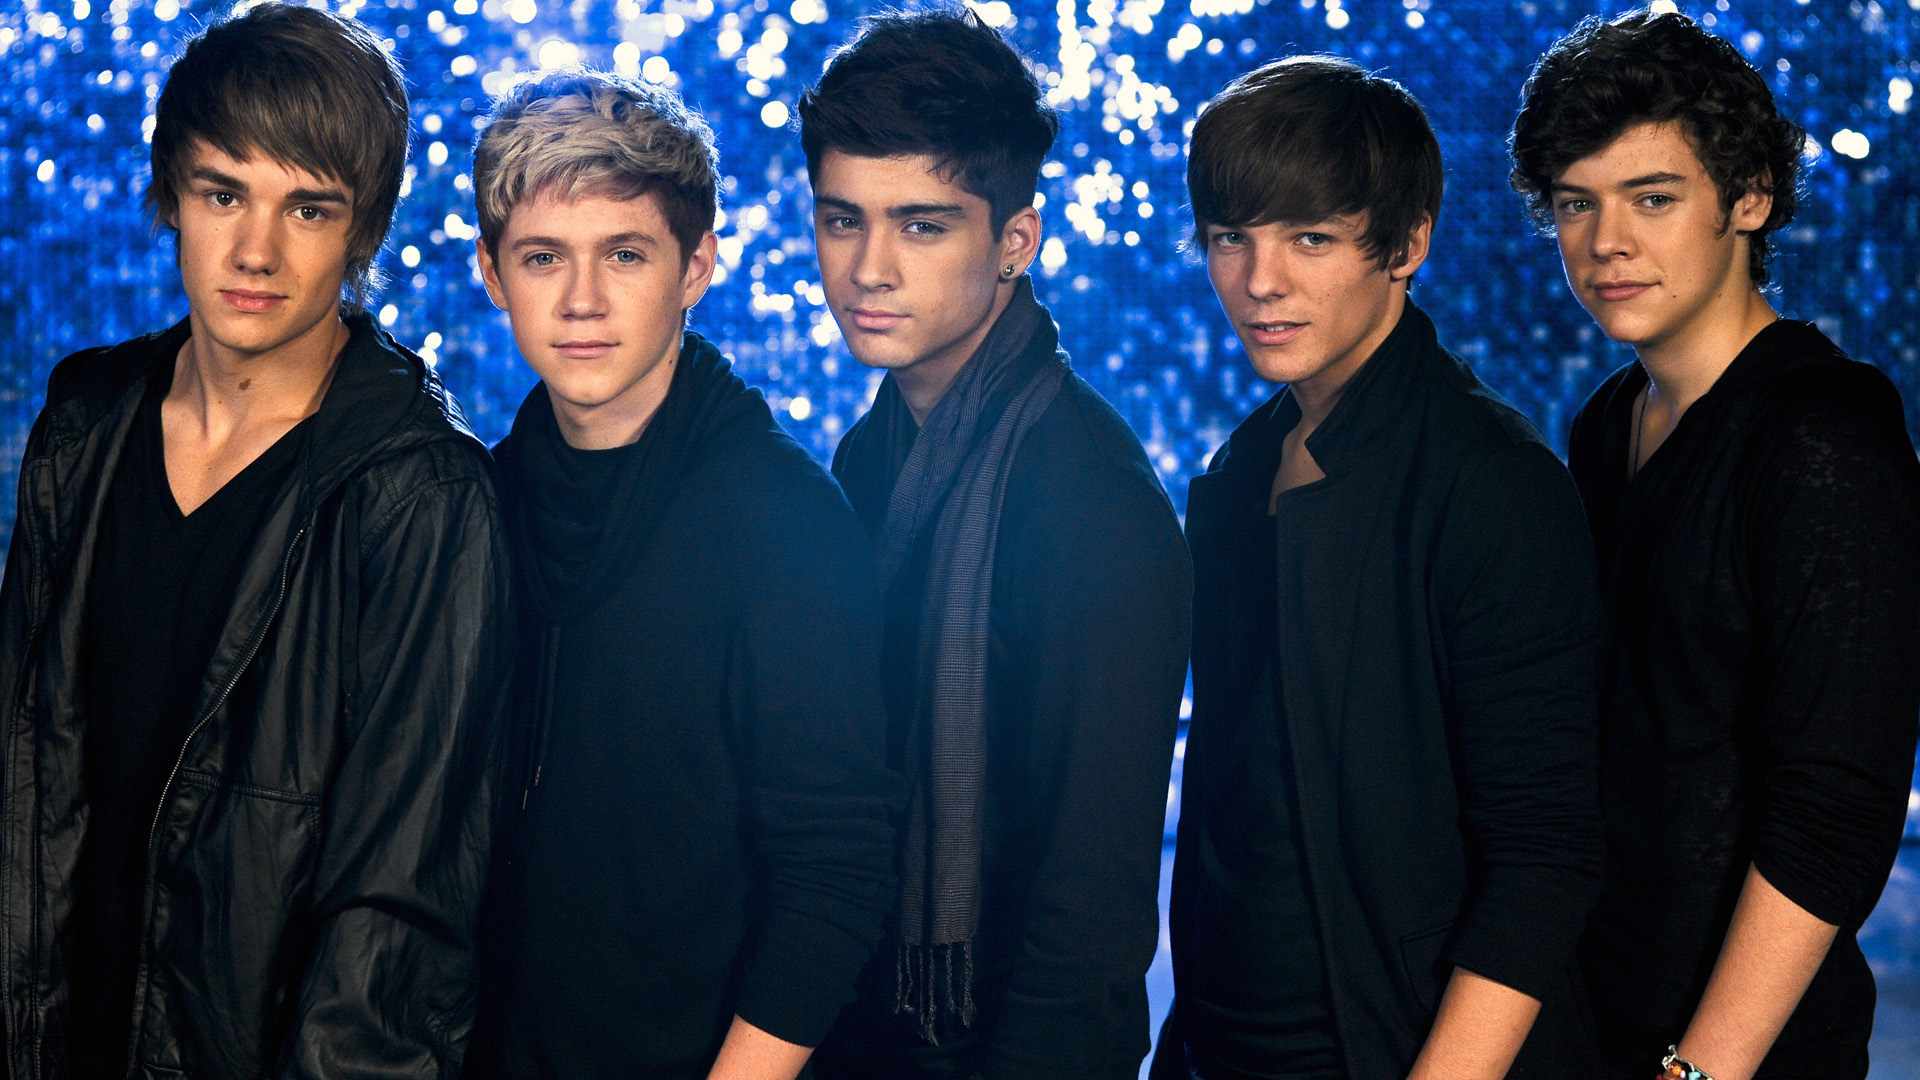 One Direction Hd Wallpapers Imagebank Biz